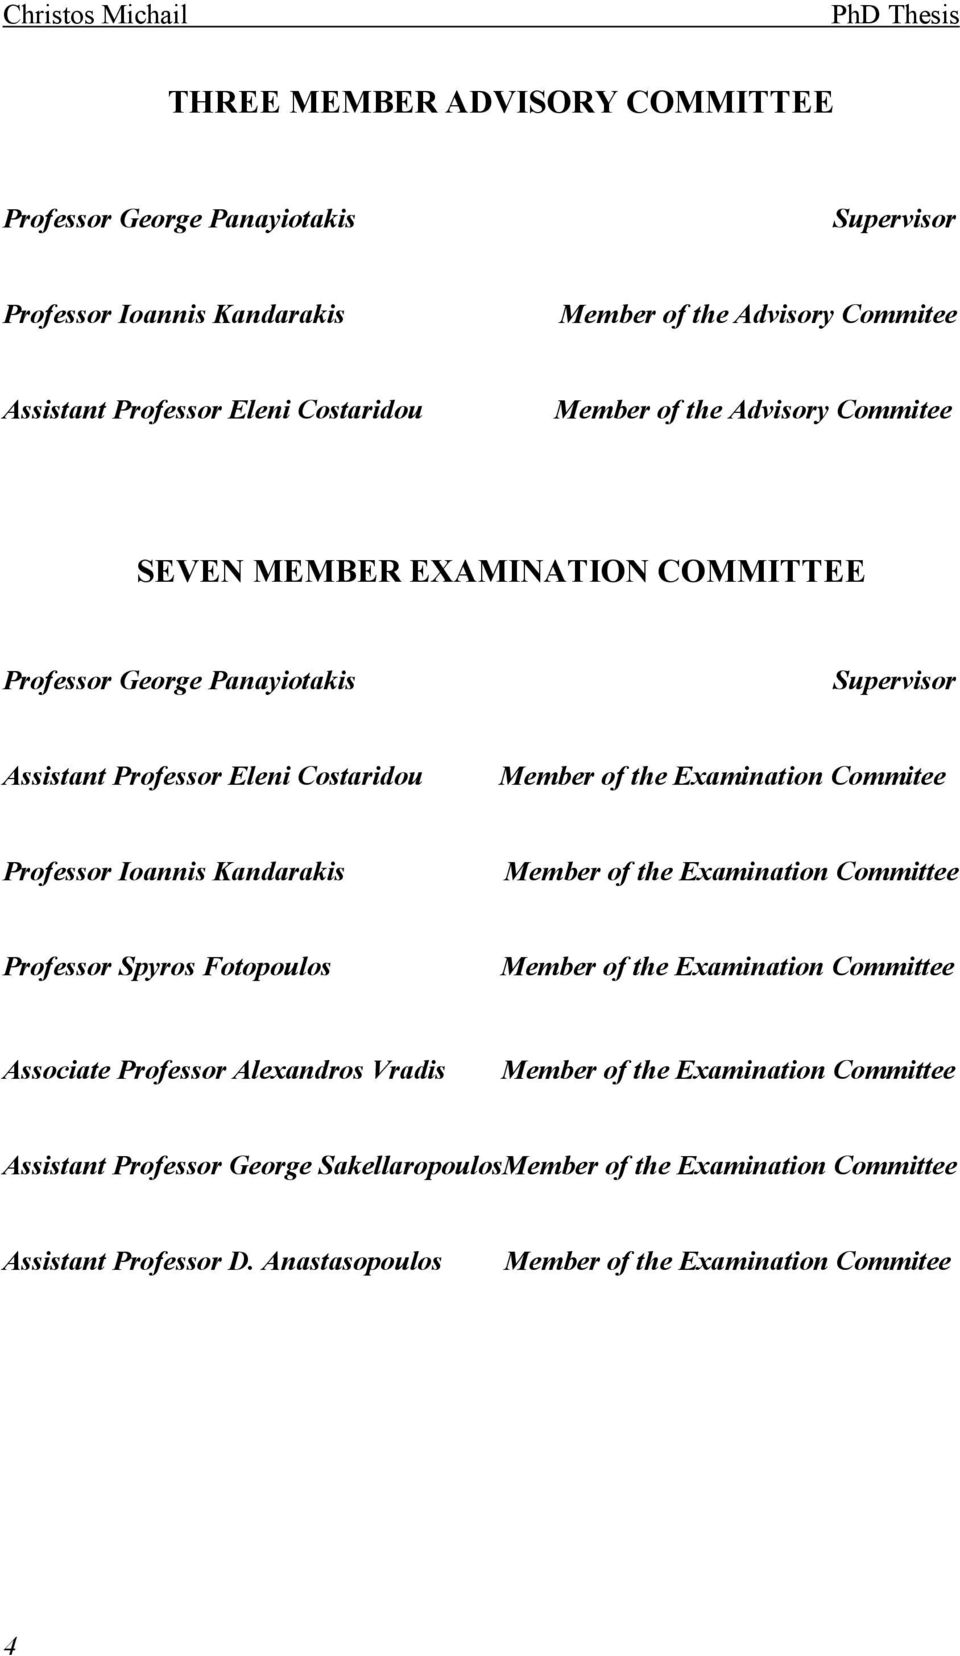 Examination Commitee Professor Ioannis Kandarakis Member of the Examination Committee Professor Spyros Fotopoulos Member of the Examination Committee Associate Professor